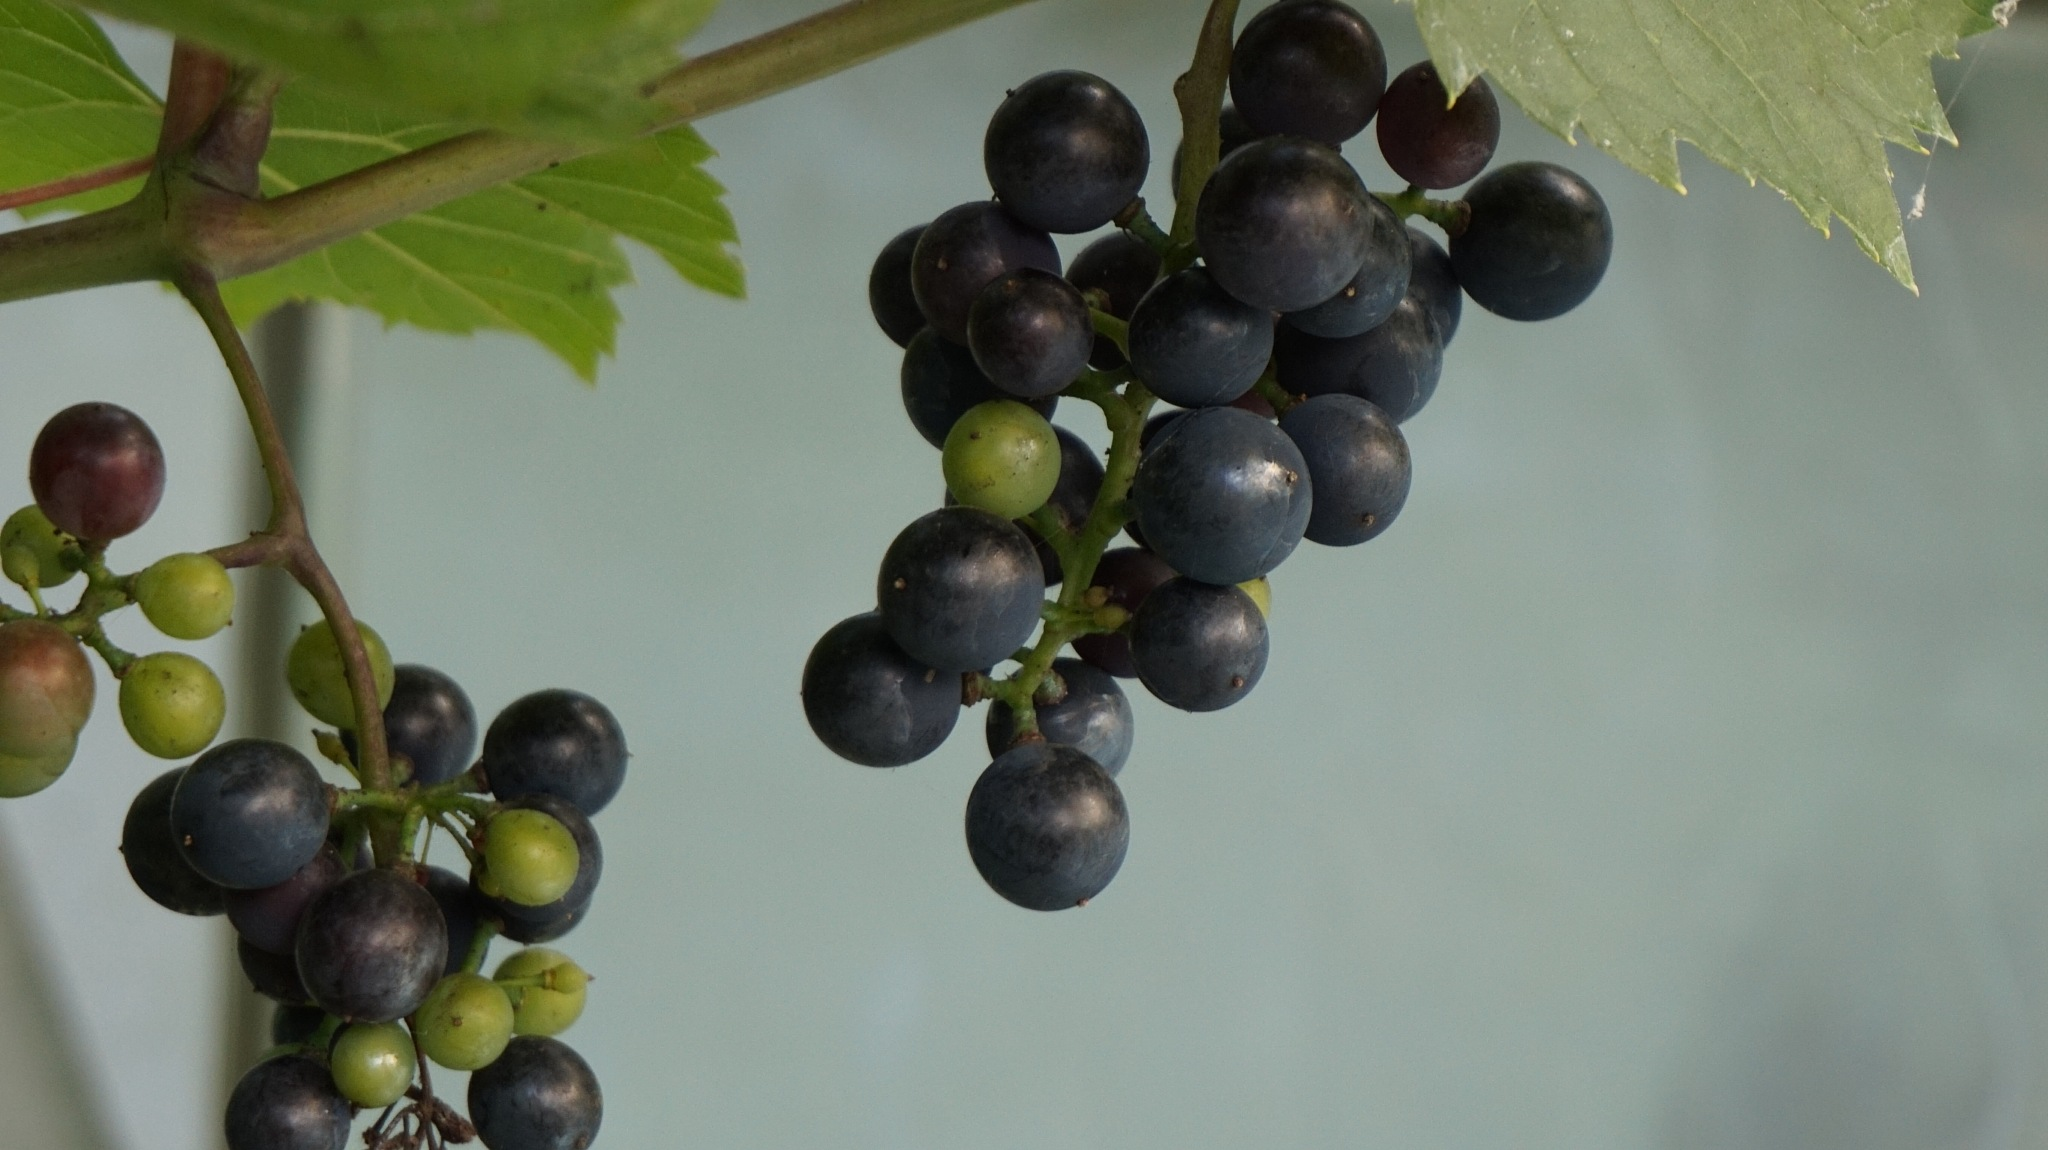 The grapes  by Knobbler58